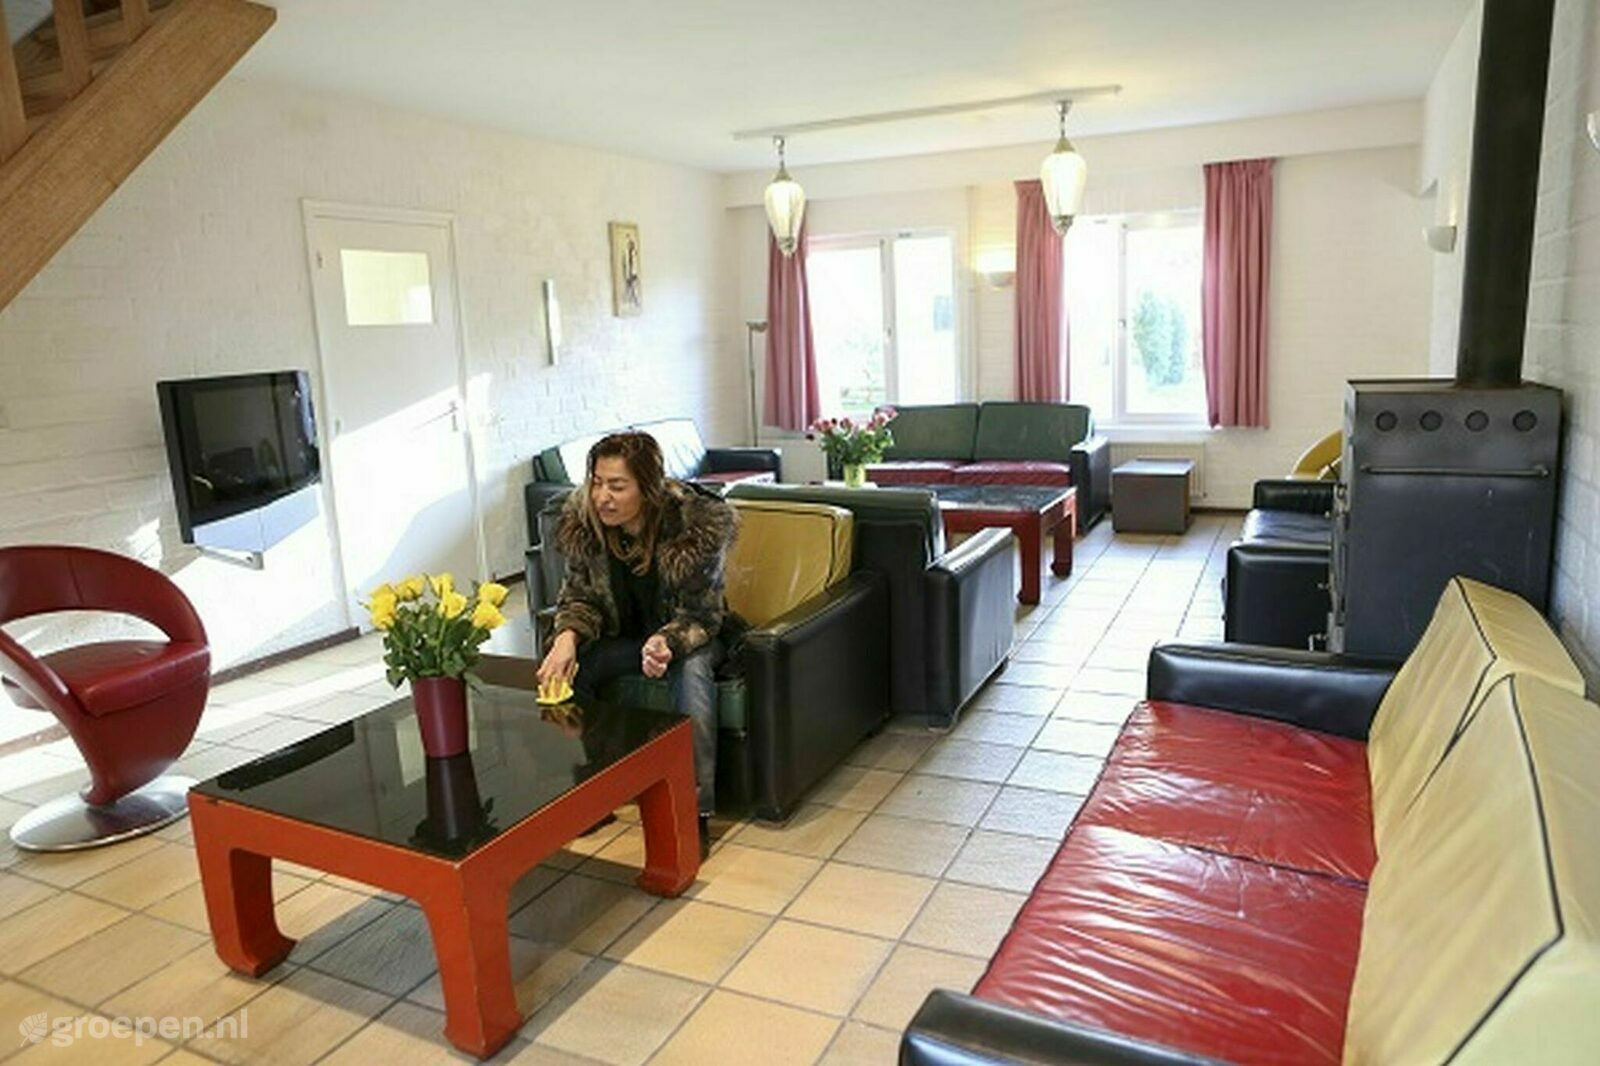 Group accommodation Gulpen